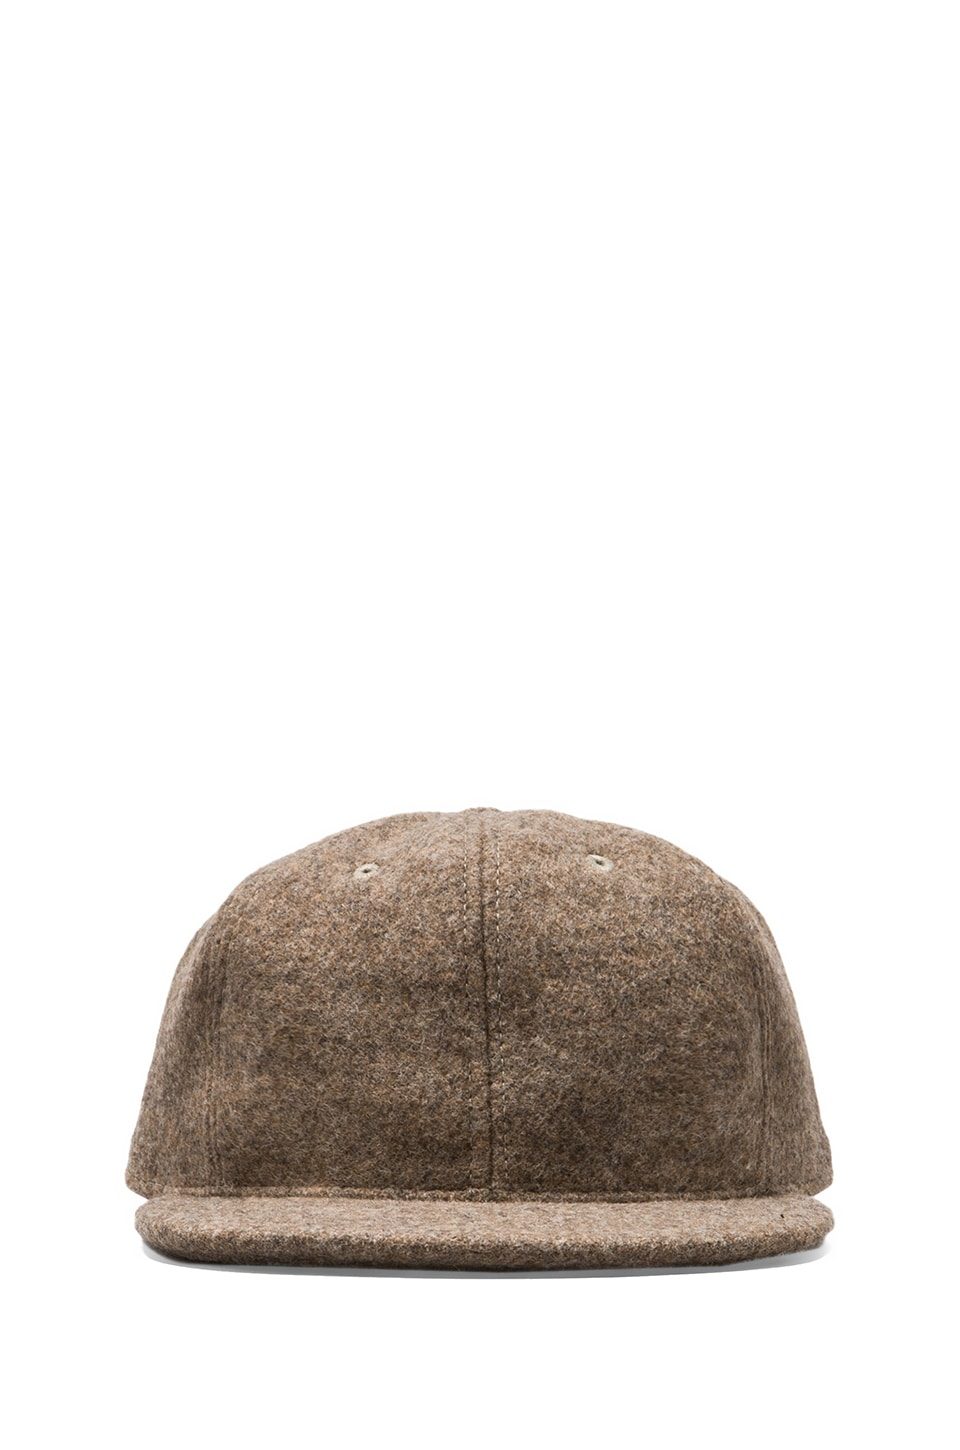 The Portland Collection by Pendleton Prineville Cap in Taupe/Goldmine